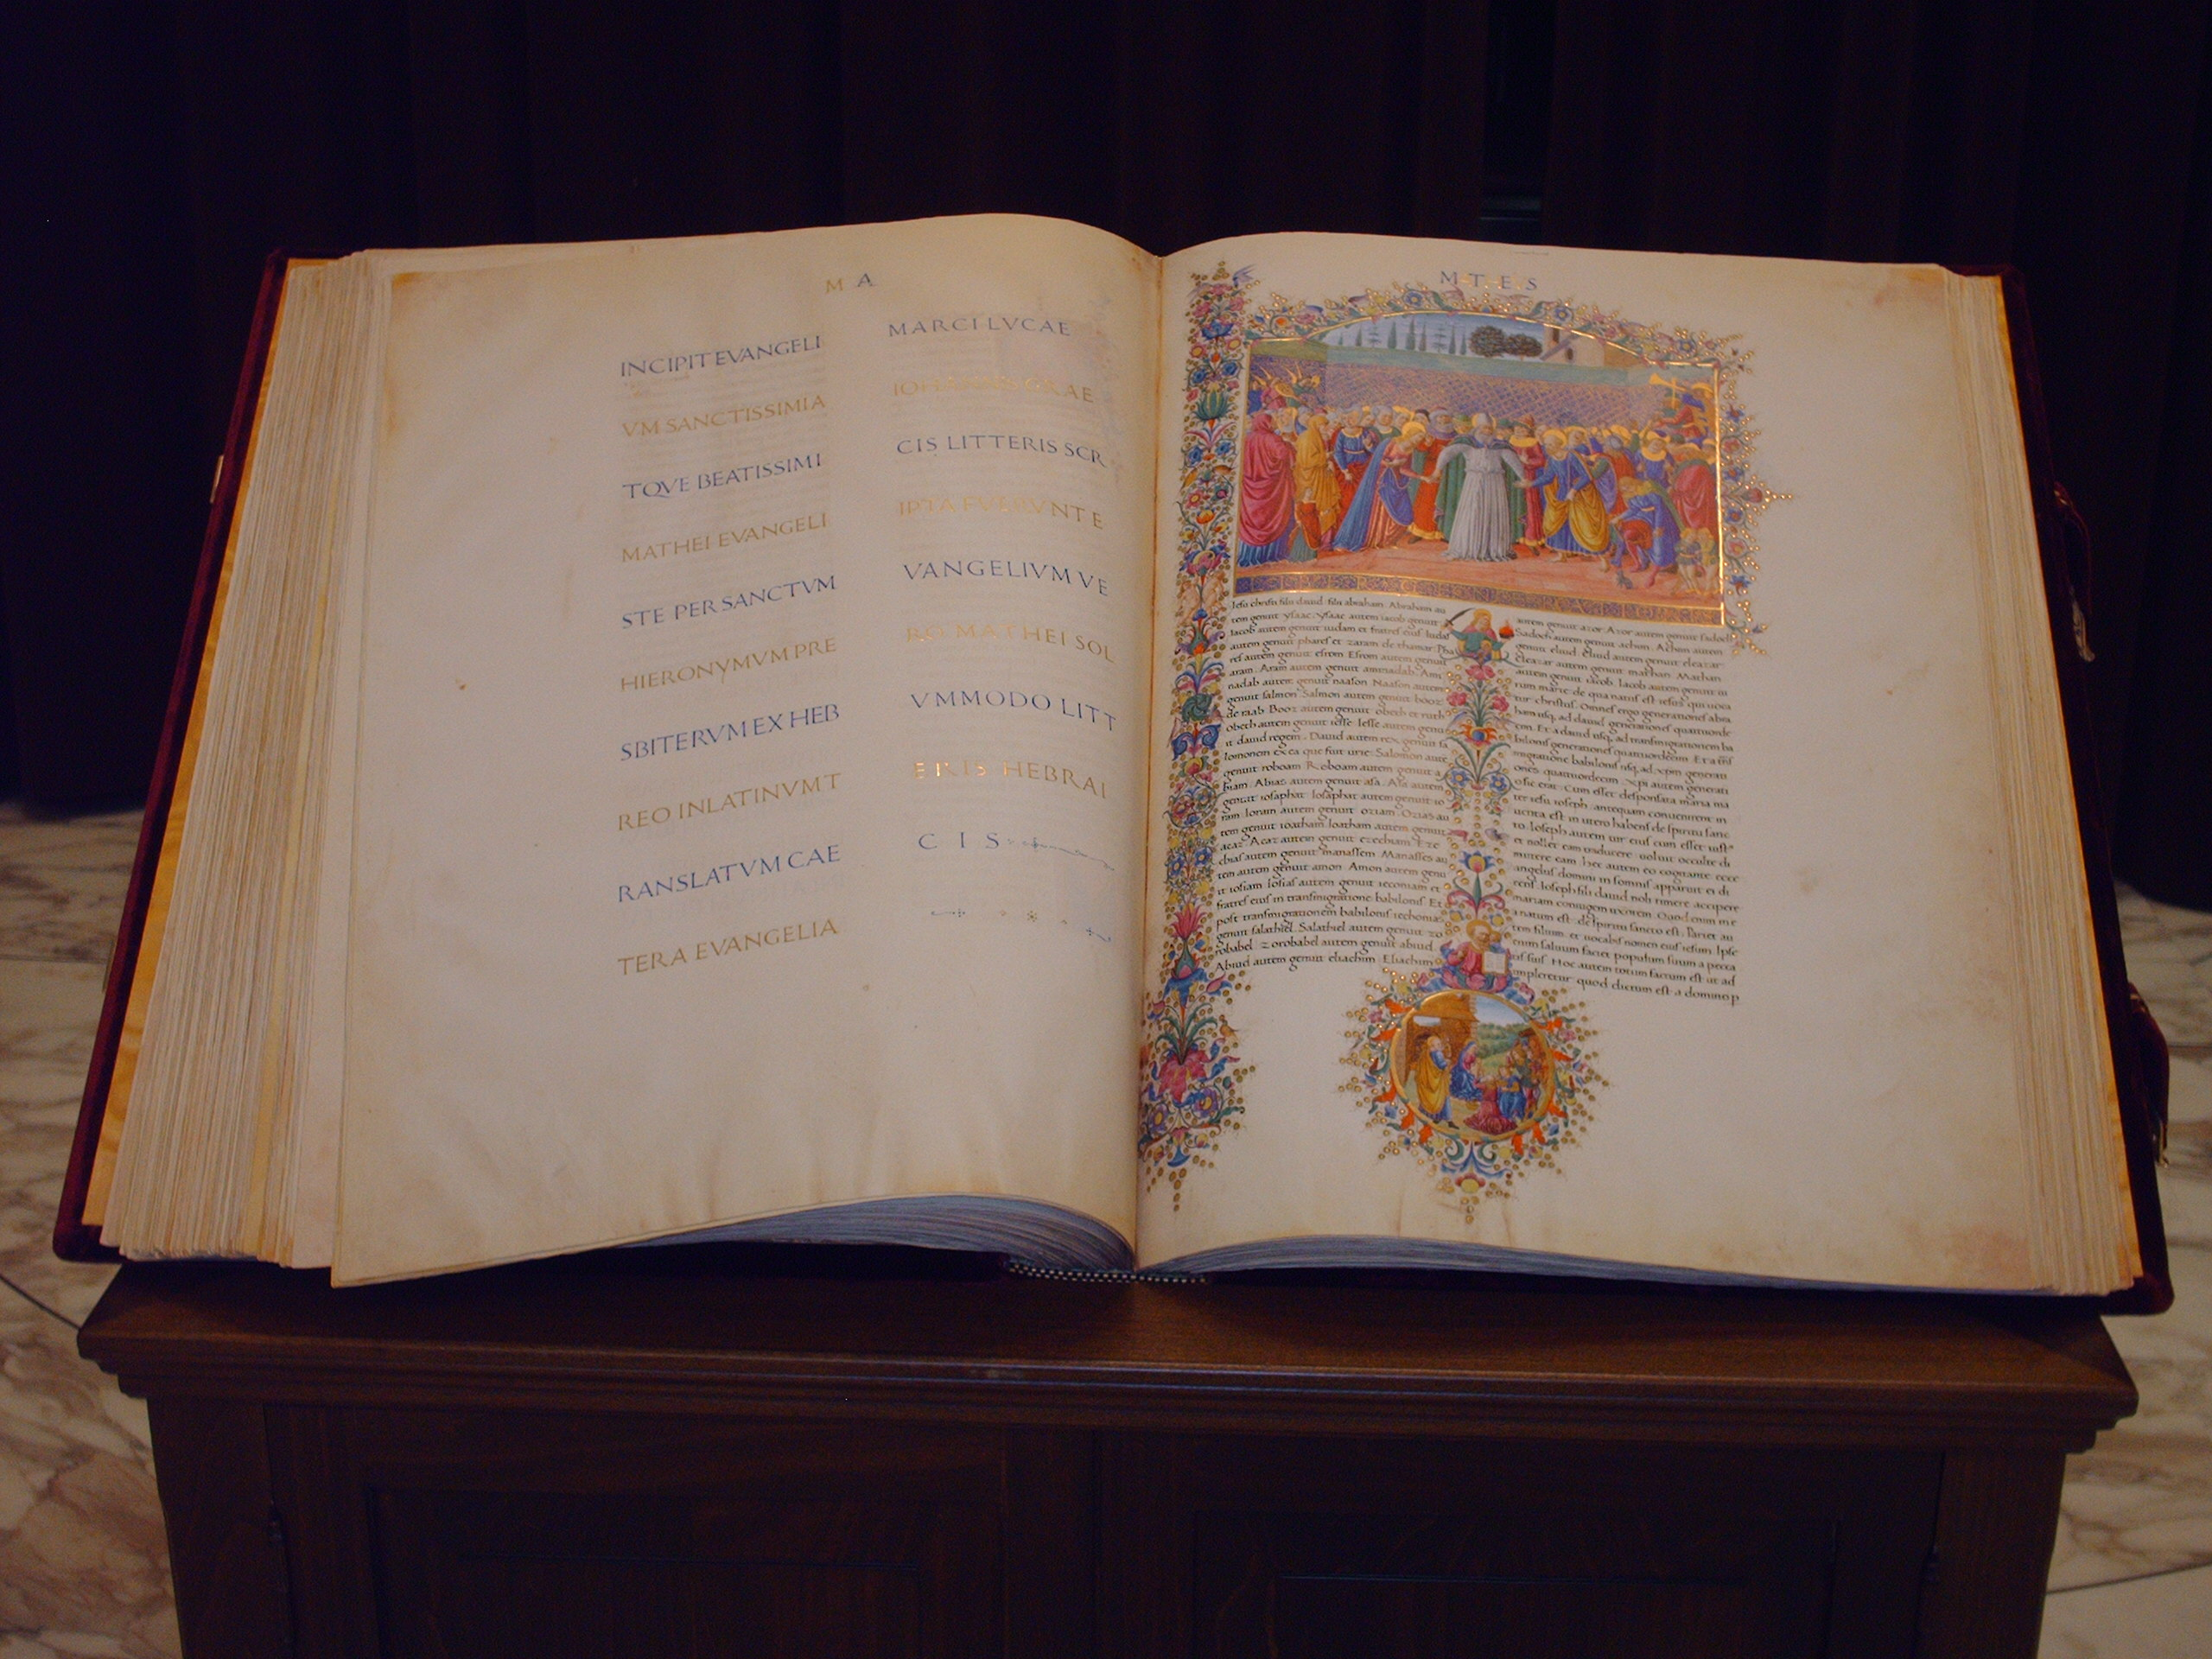 The Bible used during the Second Vatican Council, on display during the Synod.